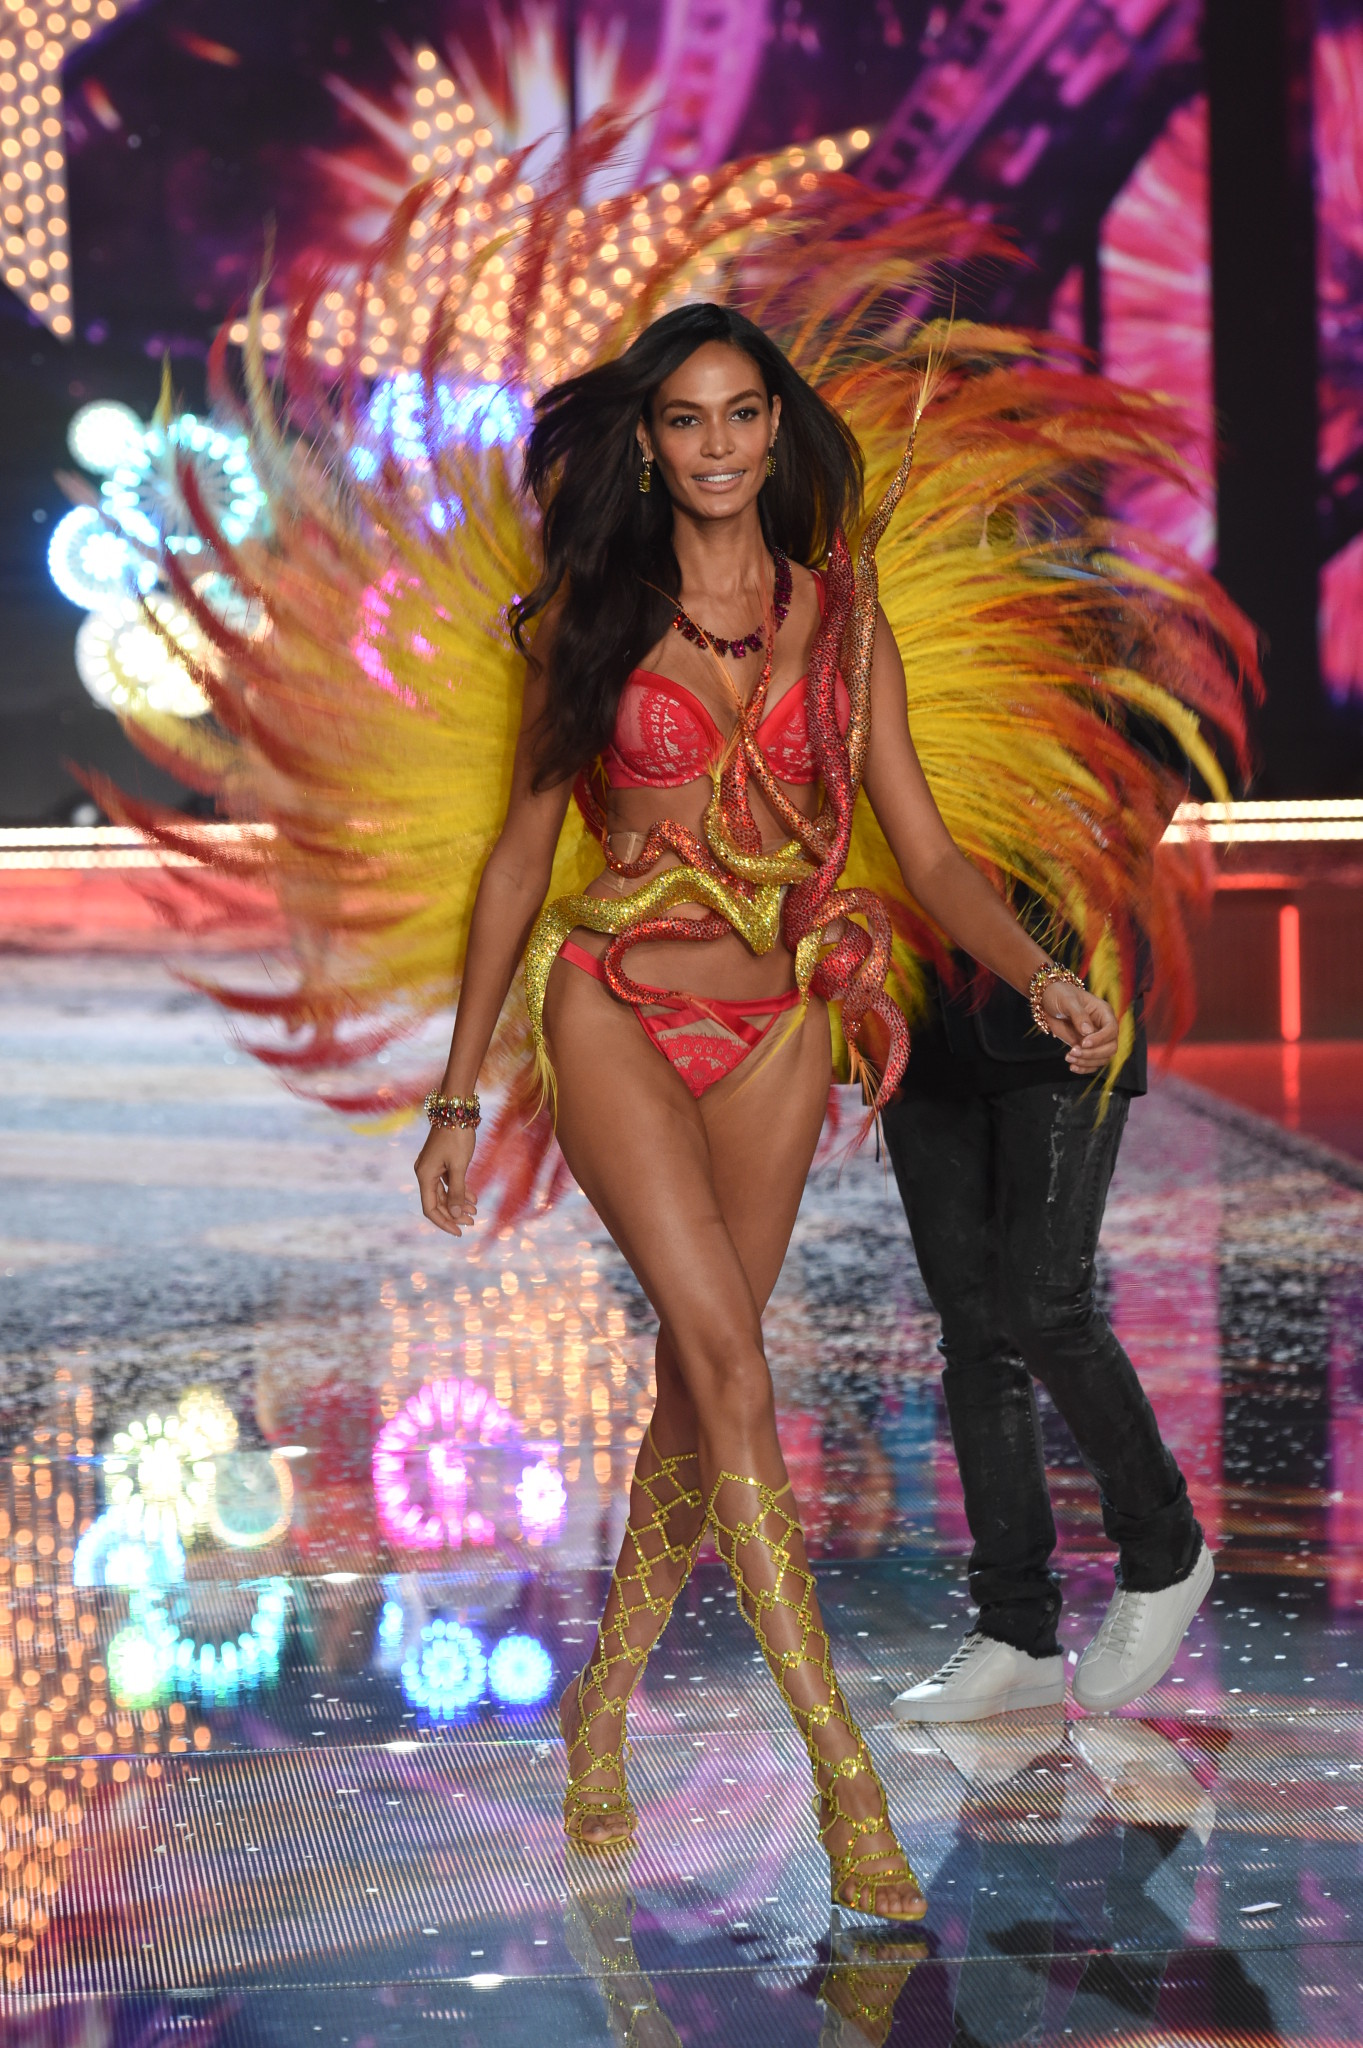 NEW YORK, NY - NOVEMBER 10: Model Joan Smalls from Puerto Rico walks the runway during the 2015 Victoria's Secret Fashion Show at Lexington Avenue Armory on November 10, 2015 in New York City. (Photo by Dimitrios Kambouris/Getty Images for Victoria's Secret)